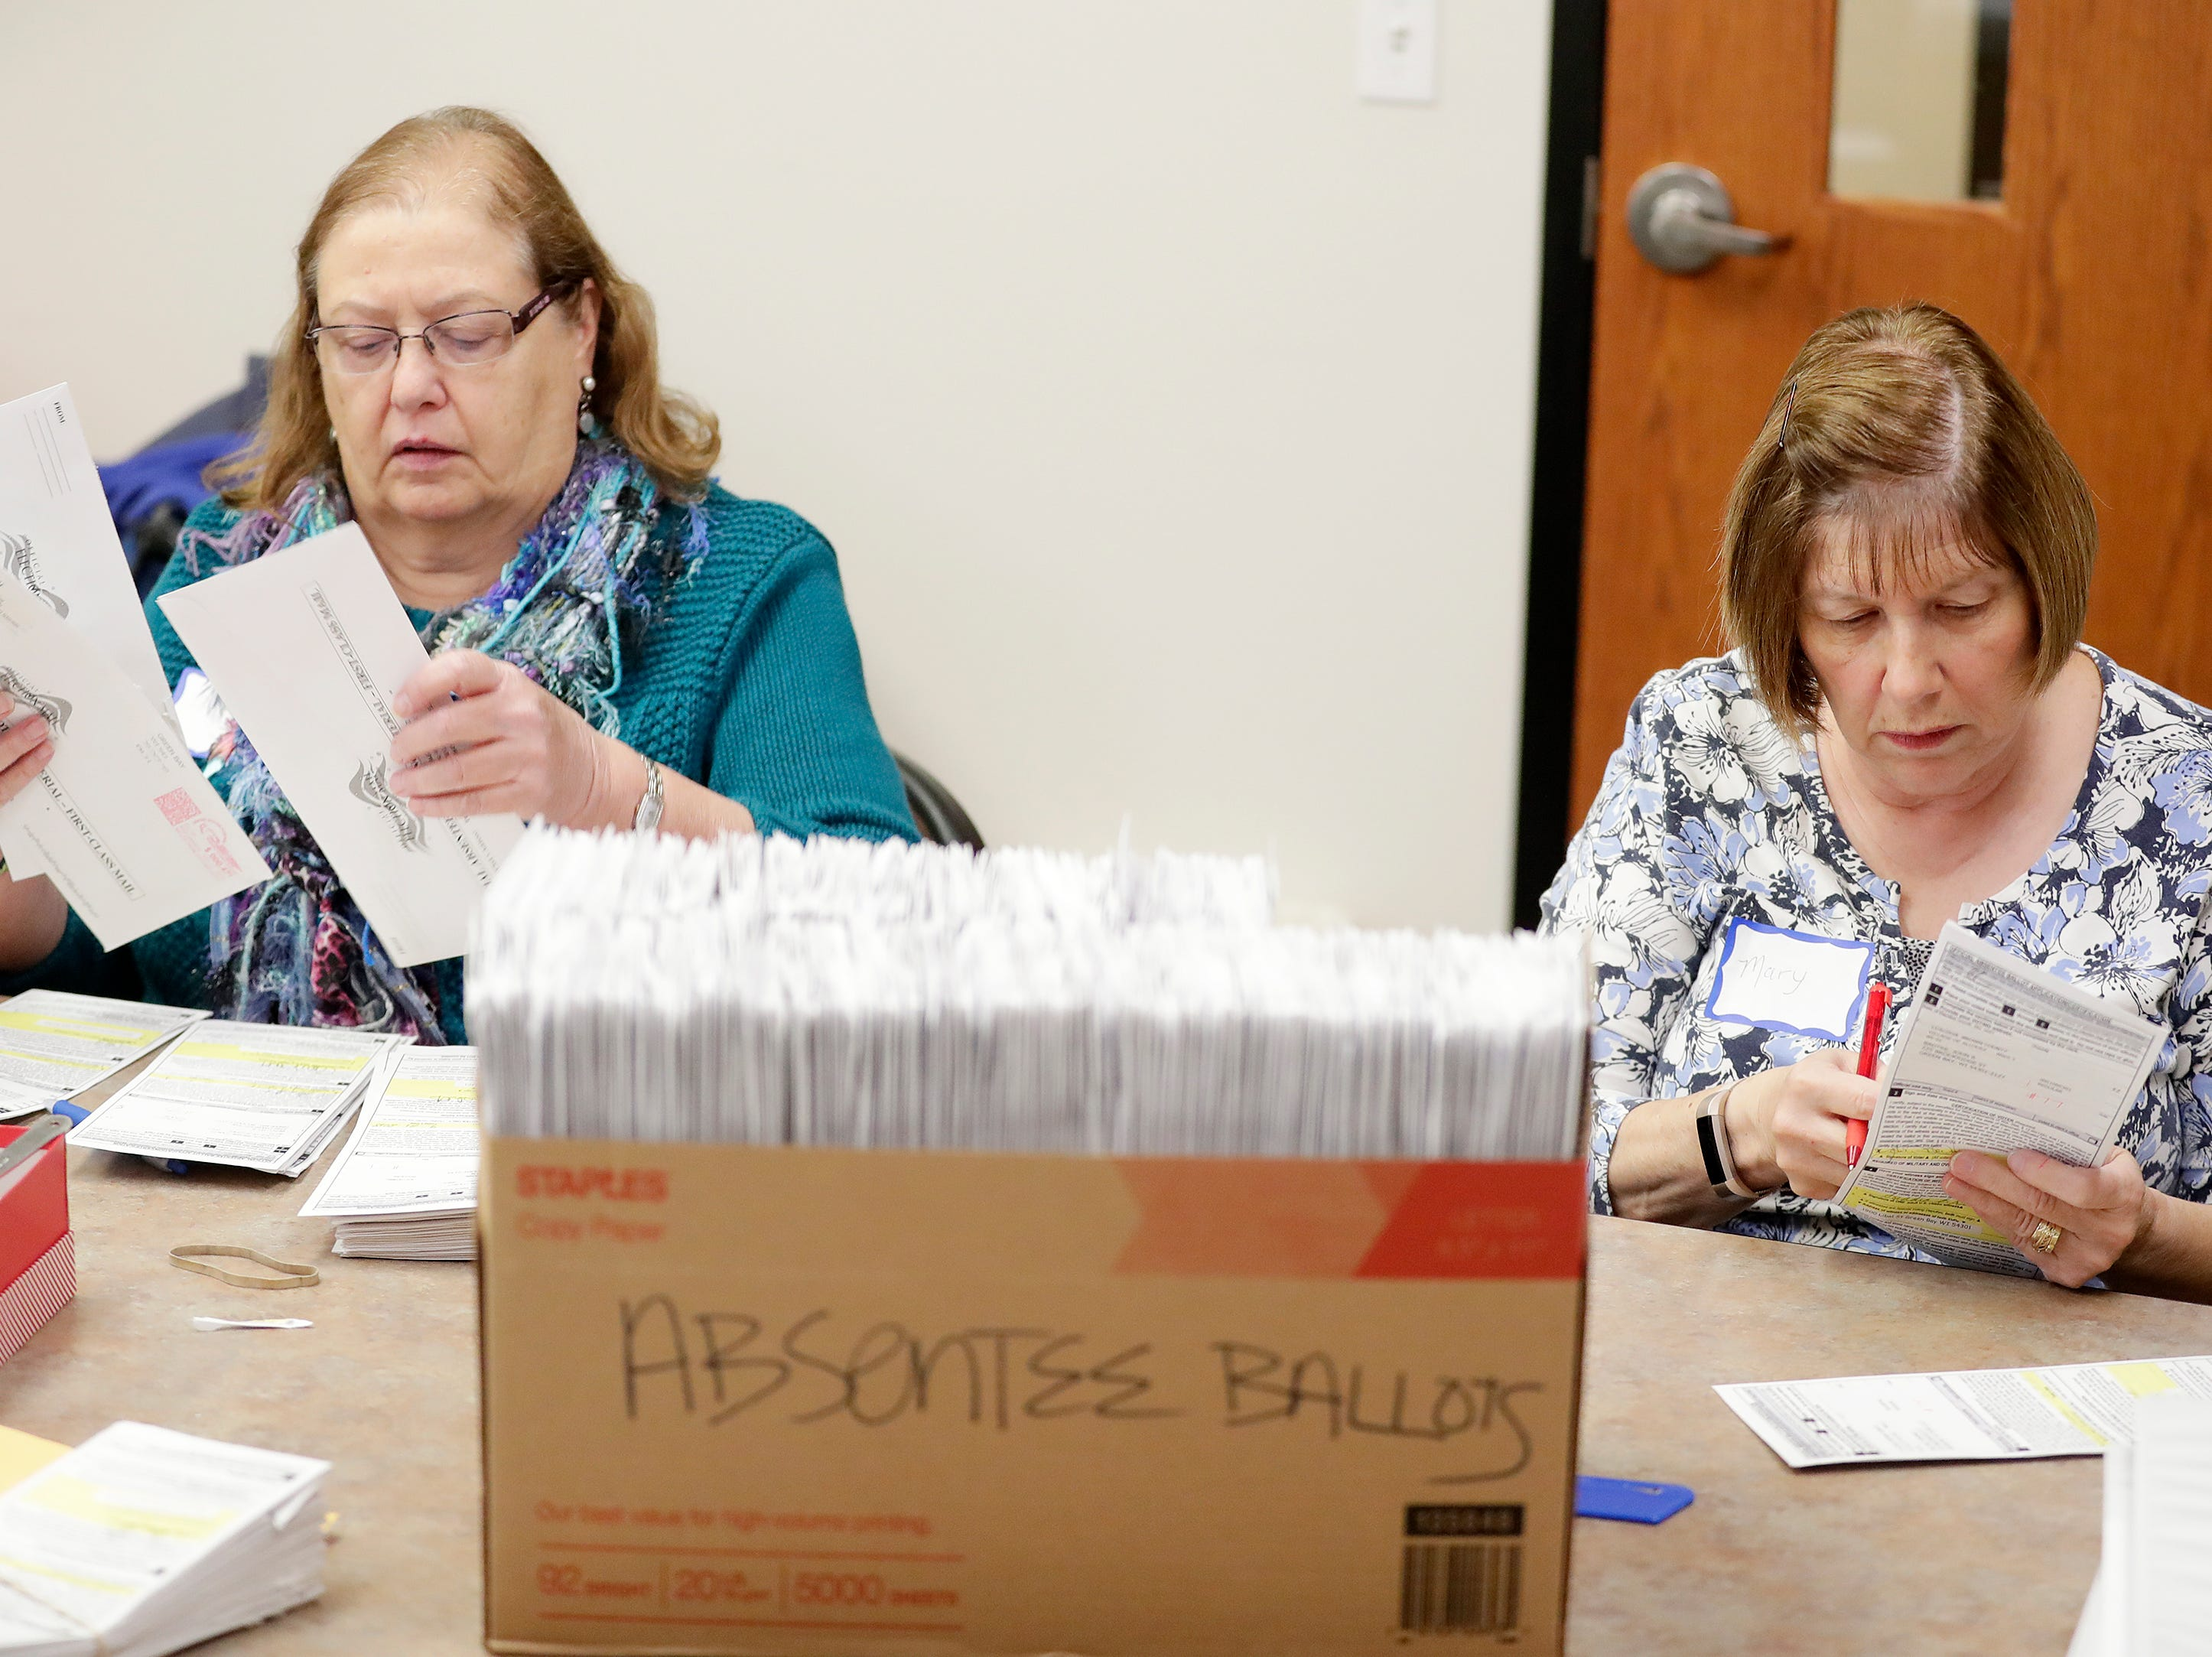 Election workers Diane Klepp and Mary Schroeder process absentee ballots at Allouez Village Hall on Tuesday, November 6, 2018 in Allouez, Wis.